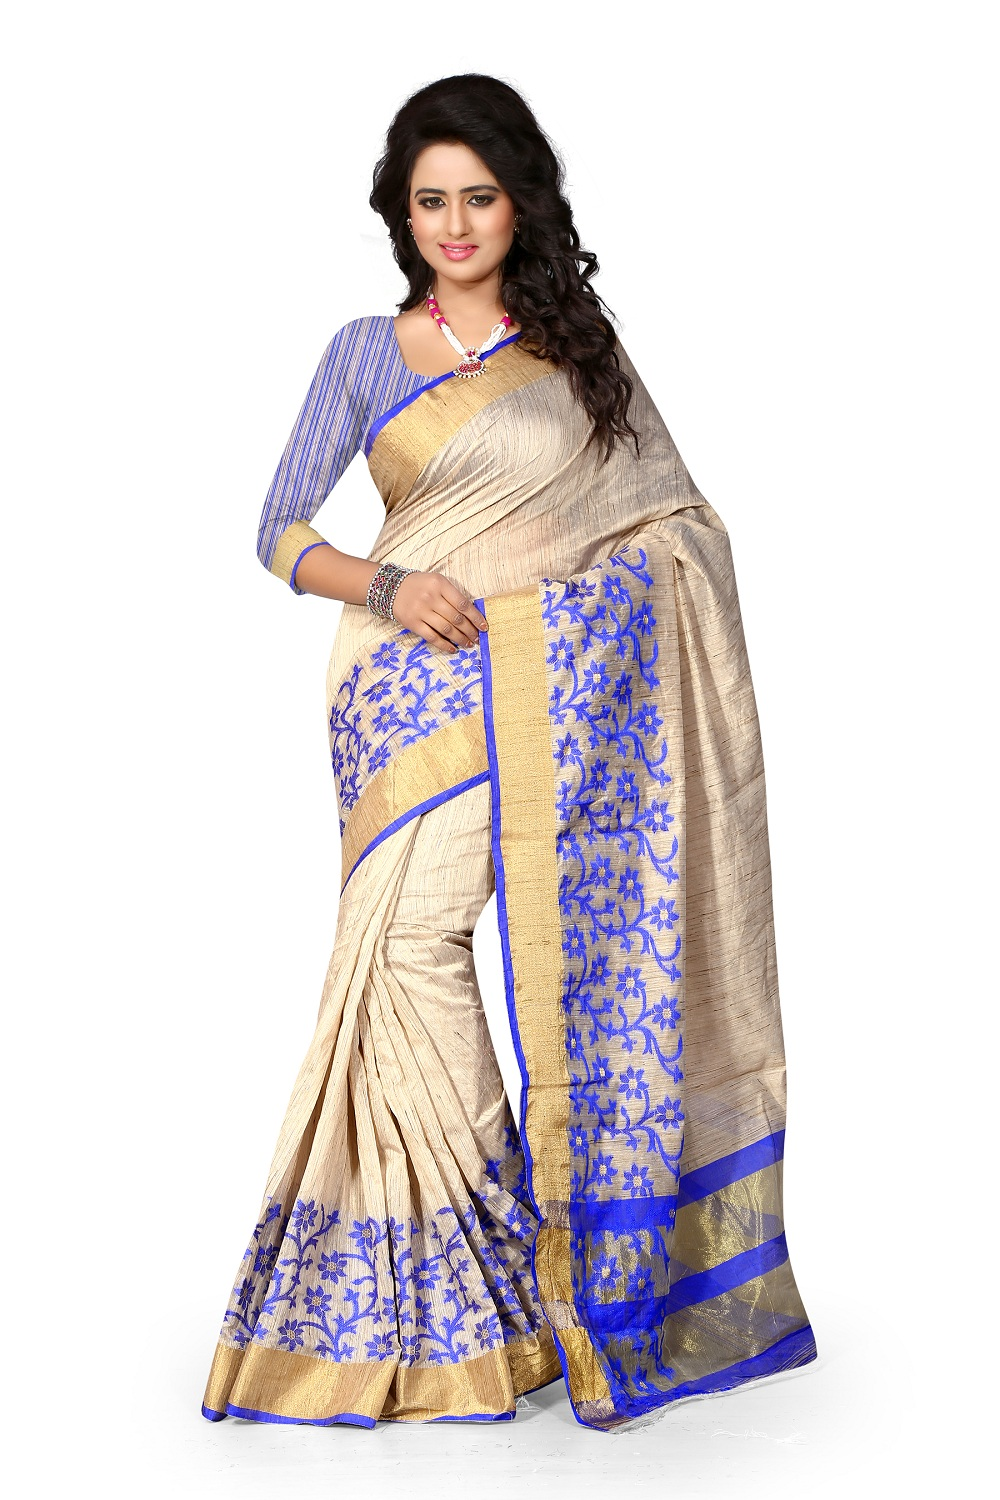 uniqueclub Unique Fashion Club Present New Designer Beige,blue And Golden  Colore Cotton Silk Saree With Unstiched Blouse Piece